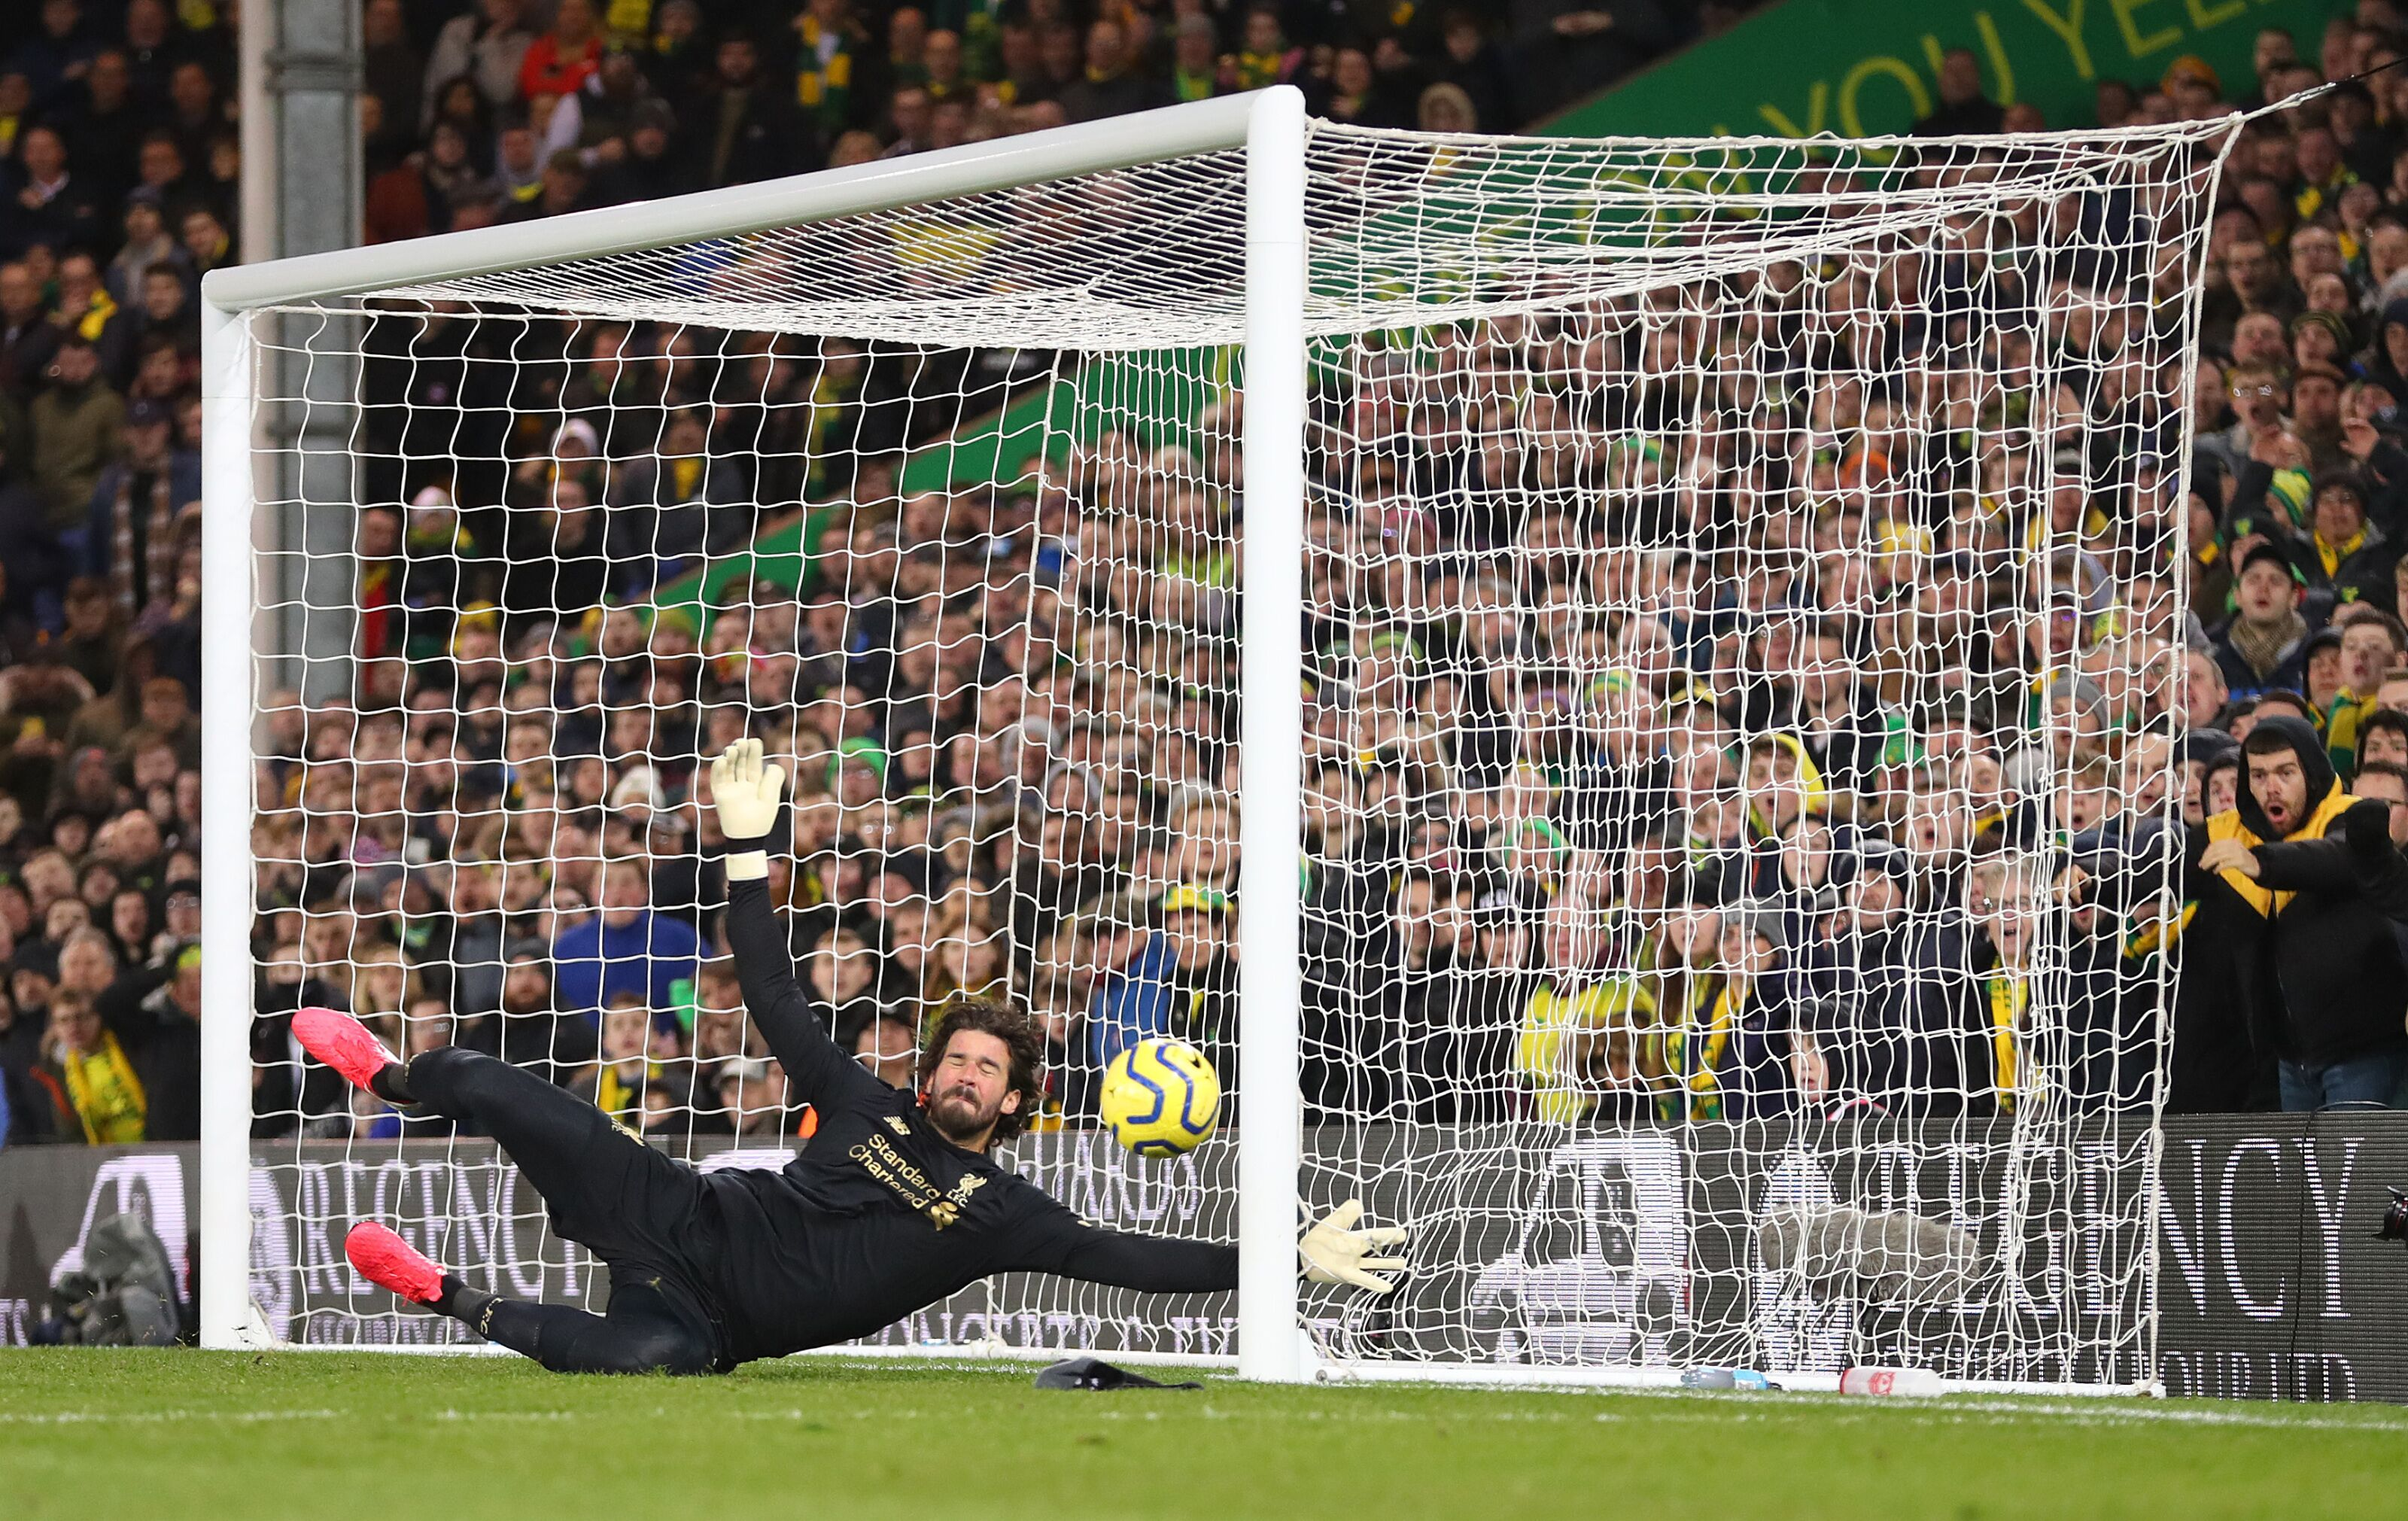 Liverpool 1-0 Norwich: Is he even human? Fans can't believe Alisson save